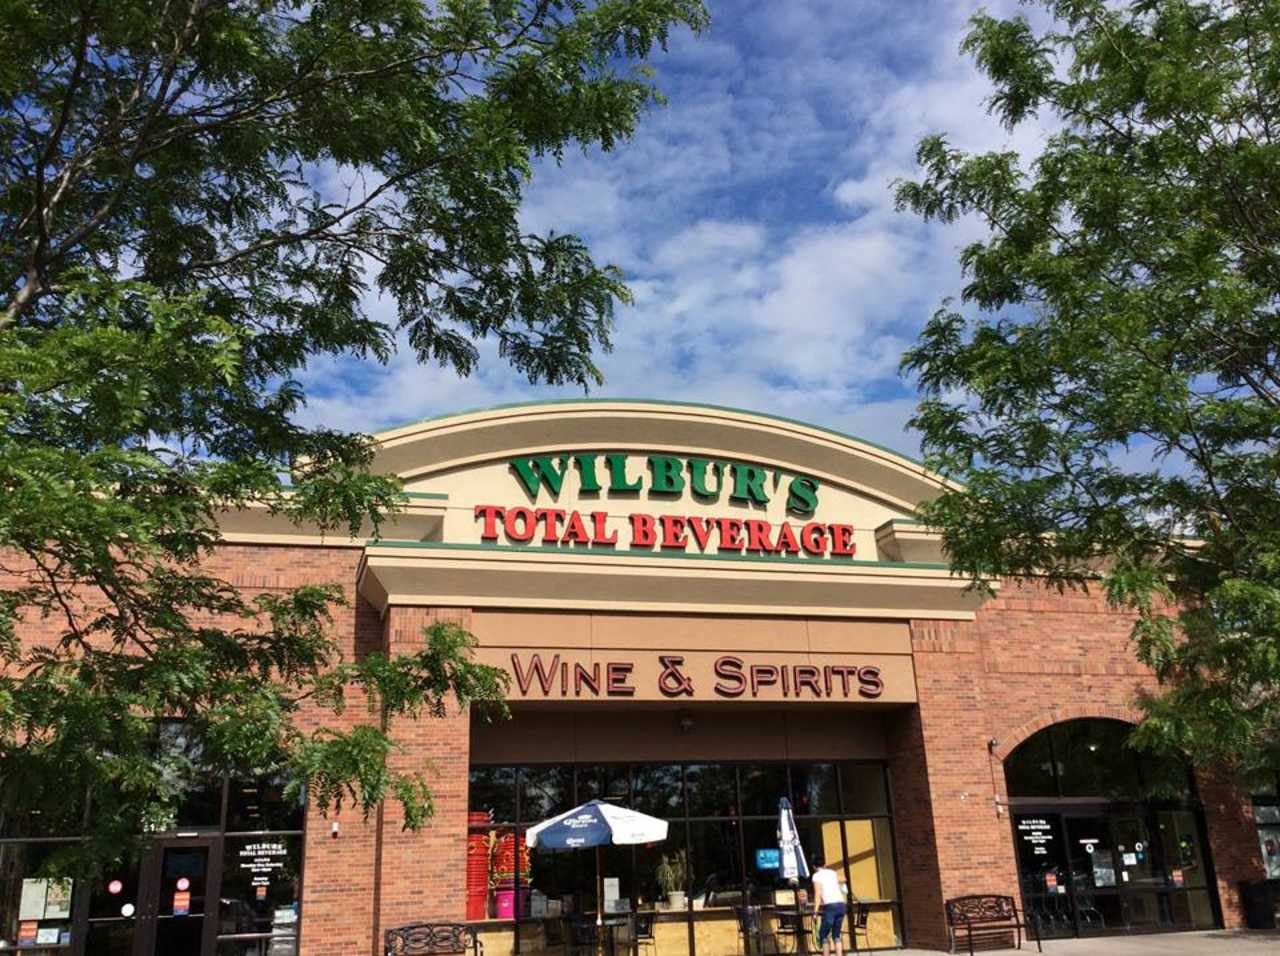 Wilbur's Total Beverage - Shopping - Liquor Stores in Fort Collins CO